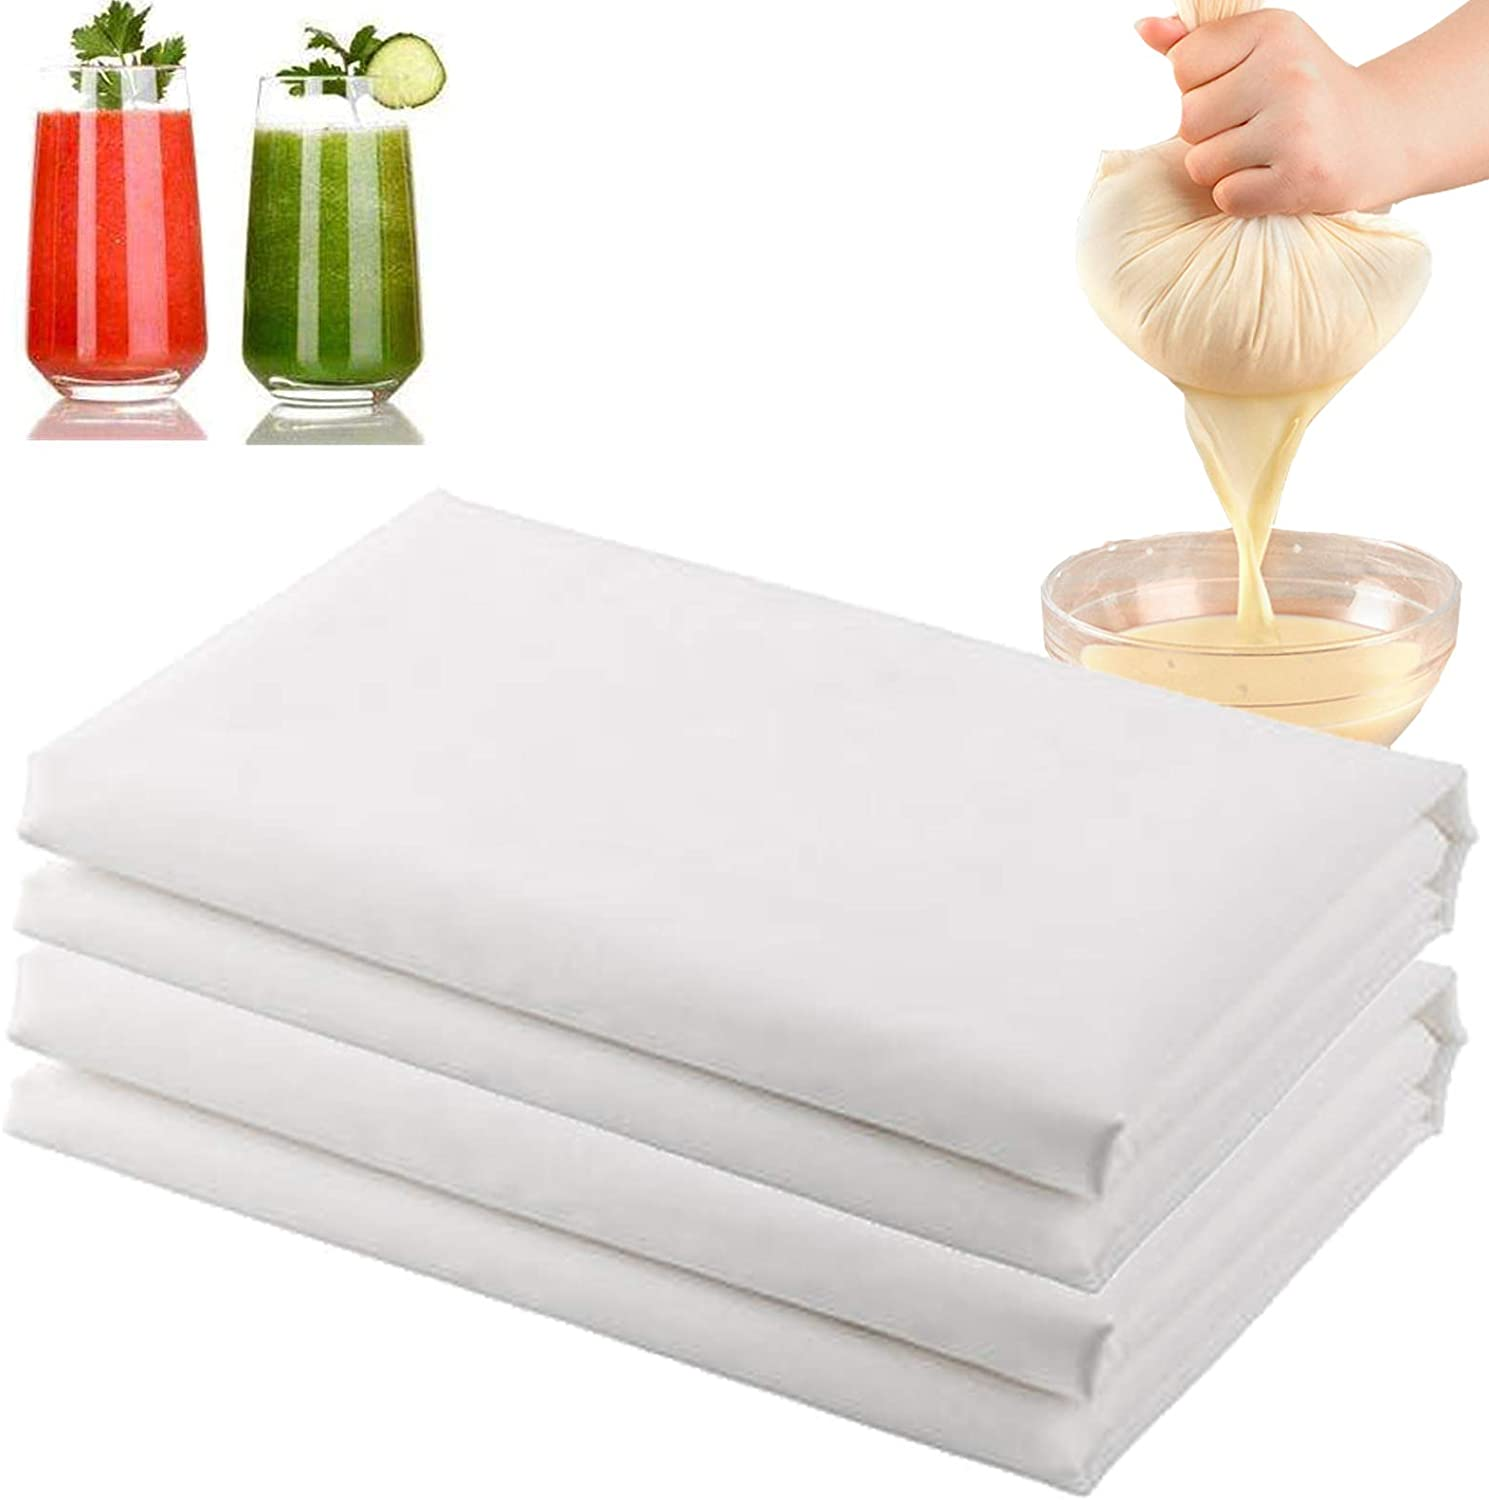 Cheese Cloth Nut Milk Cloth Nylon Straining Cloth Fine Mesh Food Strainer Cloth,Multi Purpose Food Grade Filter Cloth for Nut Milk,Juice,Cold Brew,Home Brewing (24INX24IN)